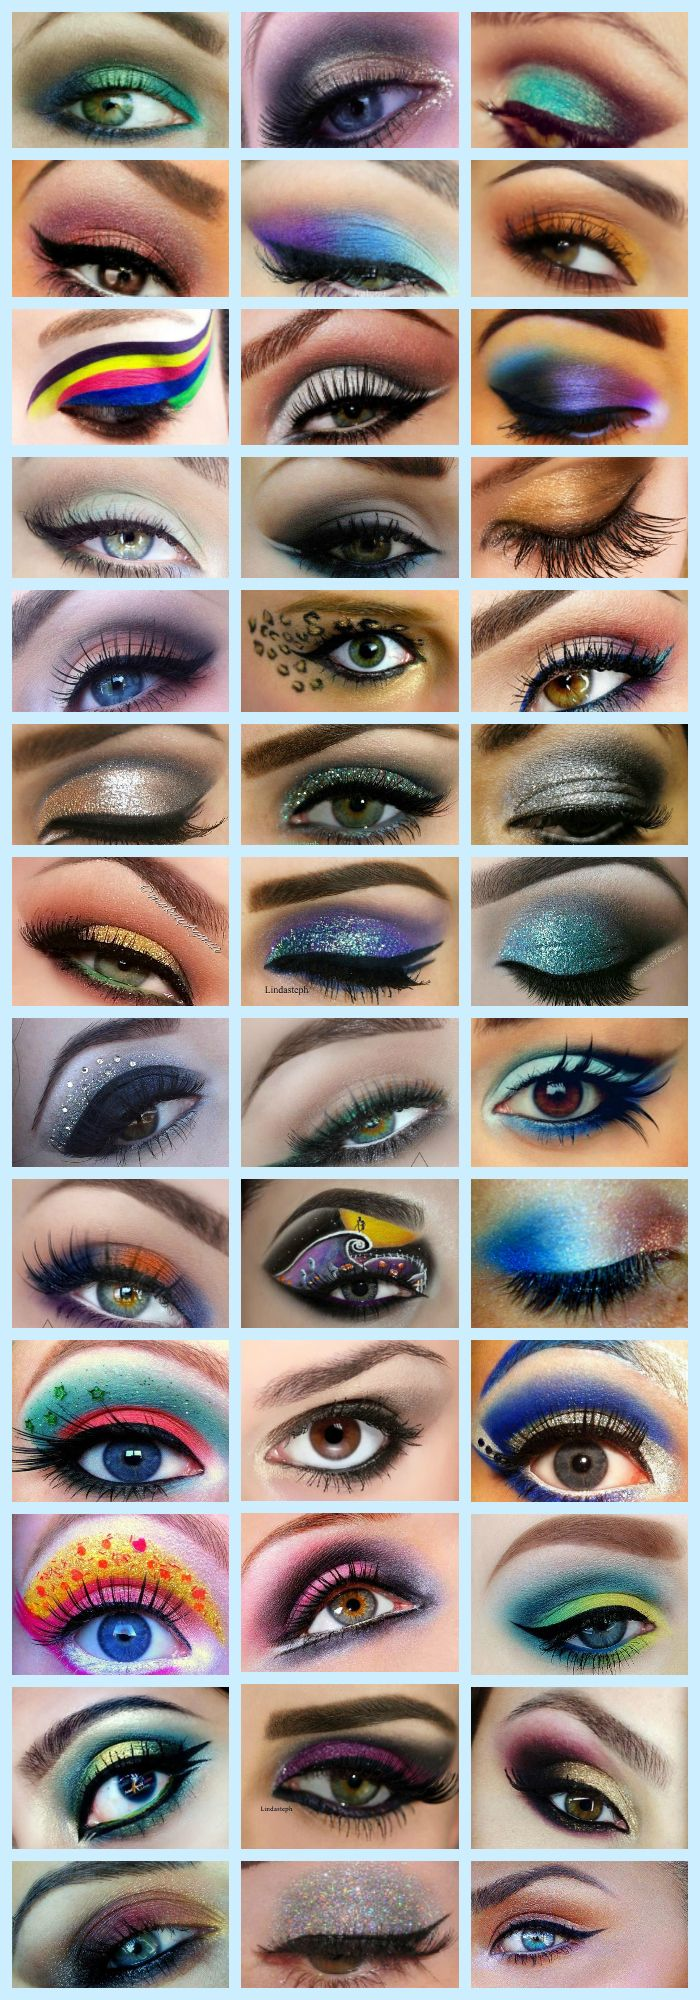 Experimenting with eye makeup has become a new trend among the youth. When it comes to eye makeup, all of us love sporting different forms of eye makeup. Here is a long list of our 102 top eye makeup tutorials compilation with a little description to help you carry them out with ease. Check these out and keep experimenting with eye makeup looks. #Eyemakeup